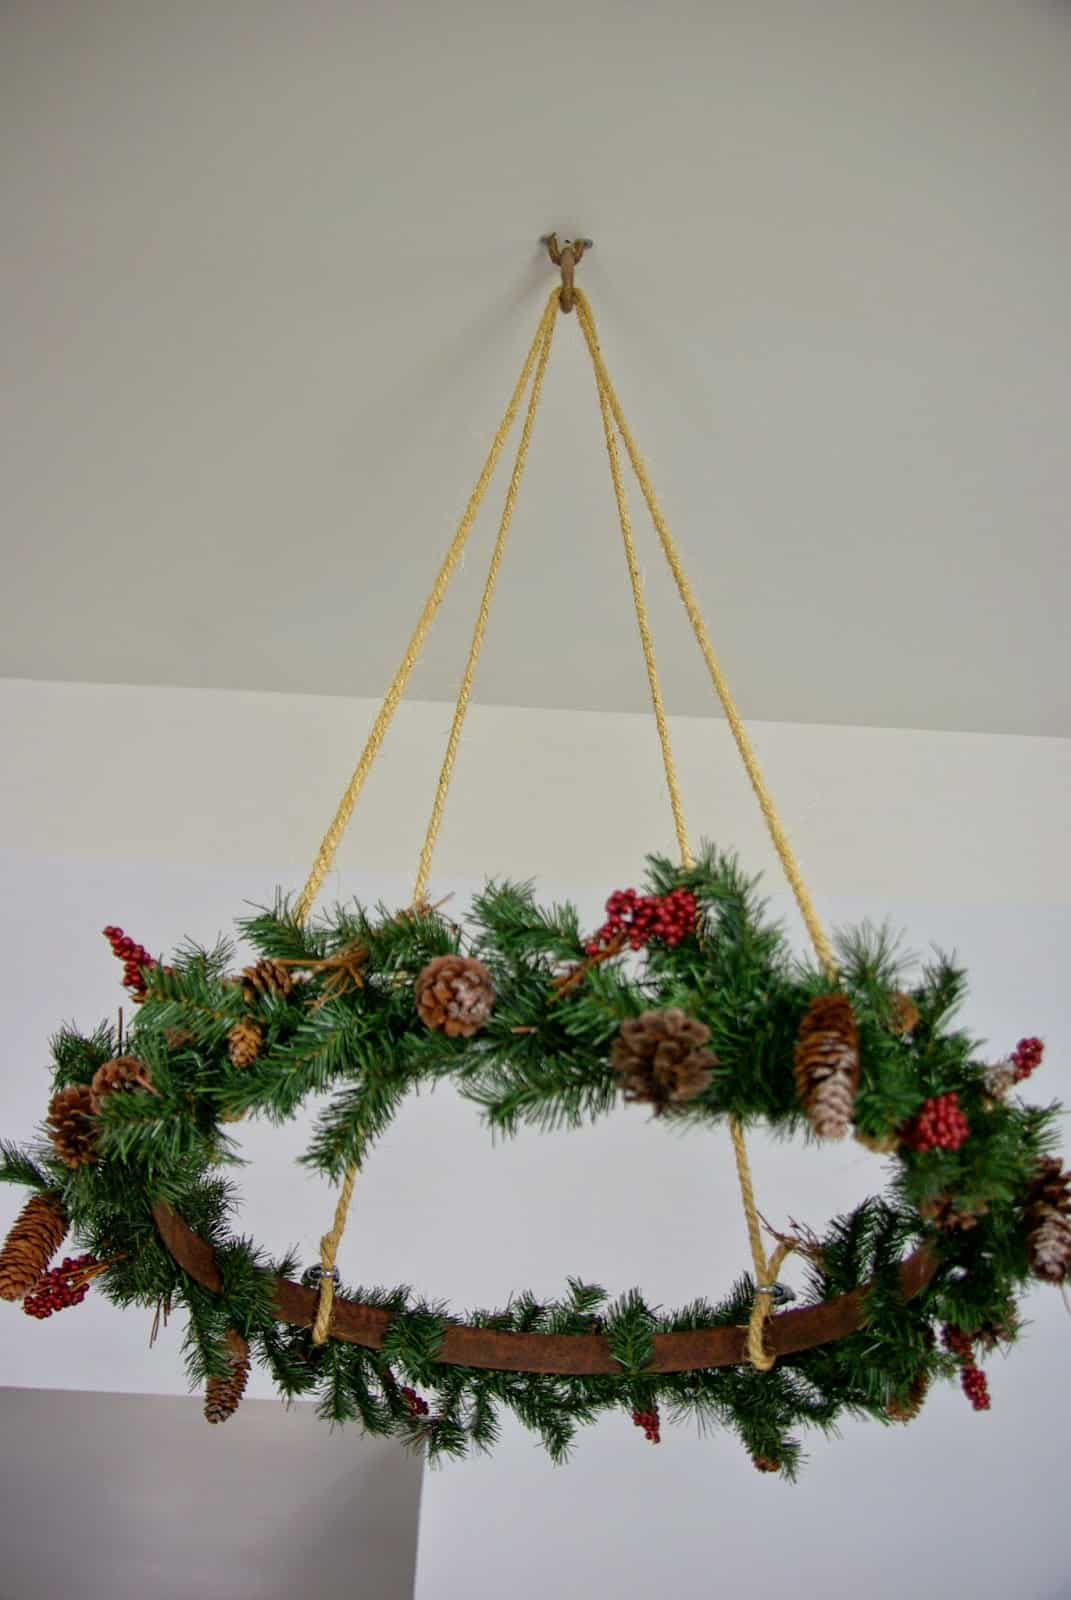 Hanging ceiling wreath